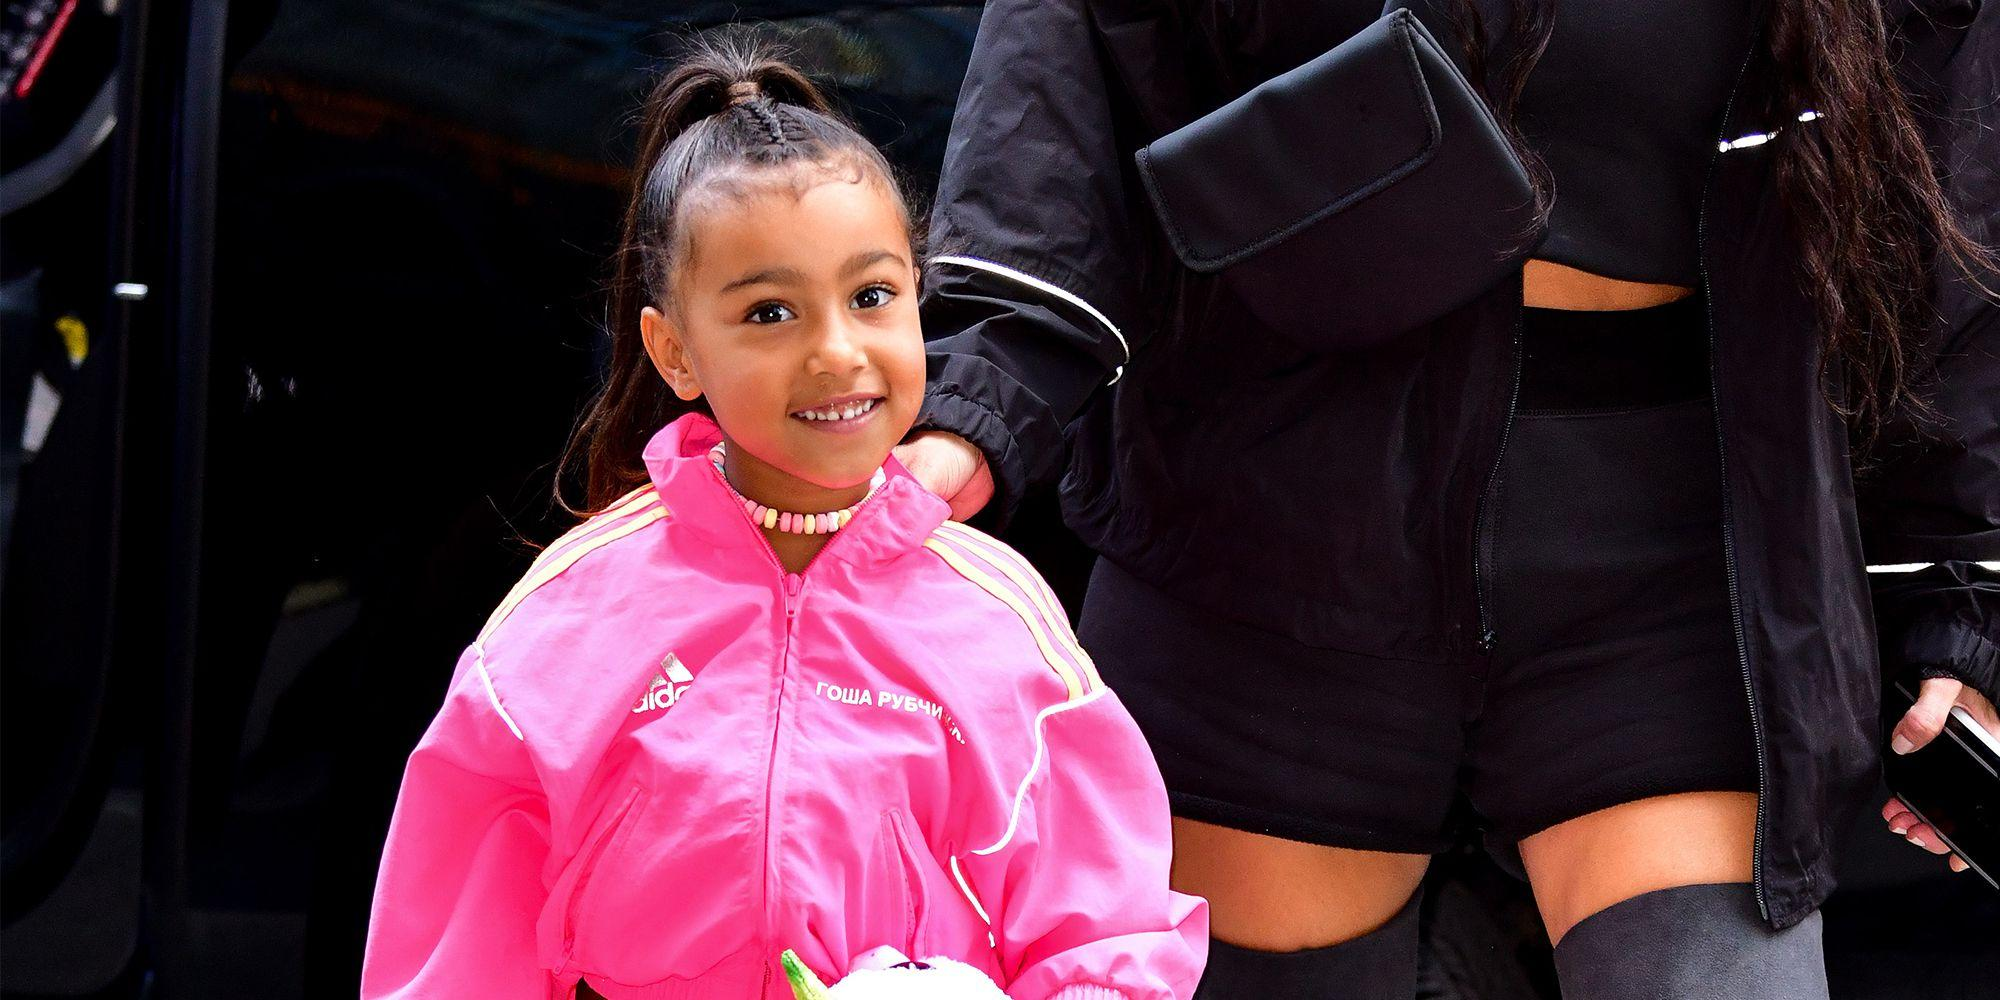 KUWK: North West Tries On Mom Kim Kardashian's Colorful Heels In New Pic - Check It Out!